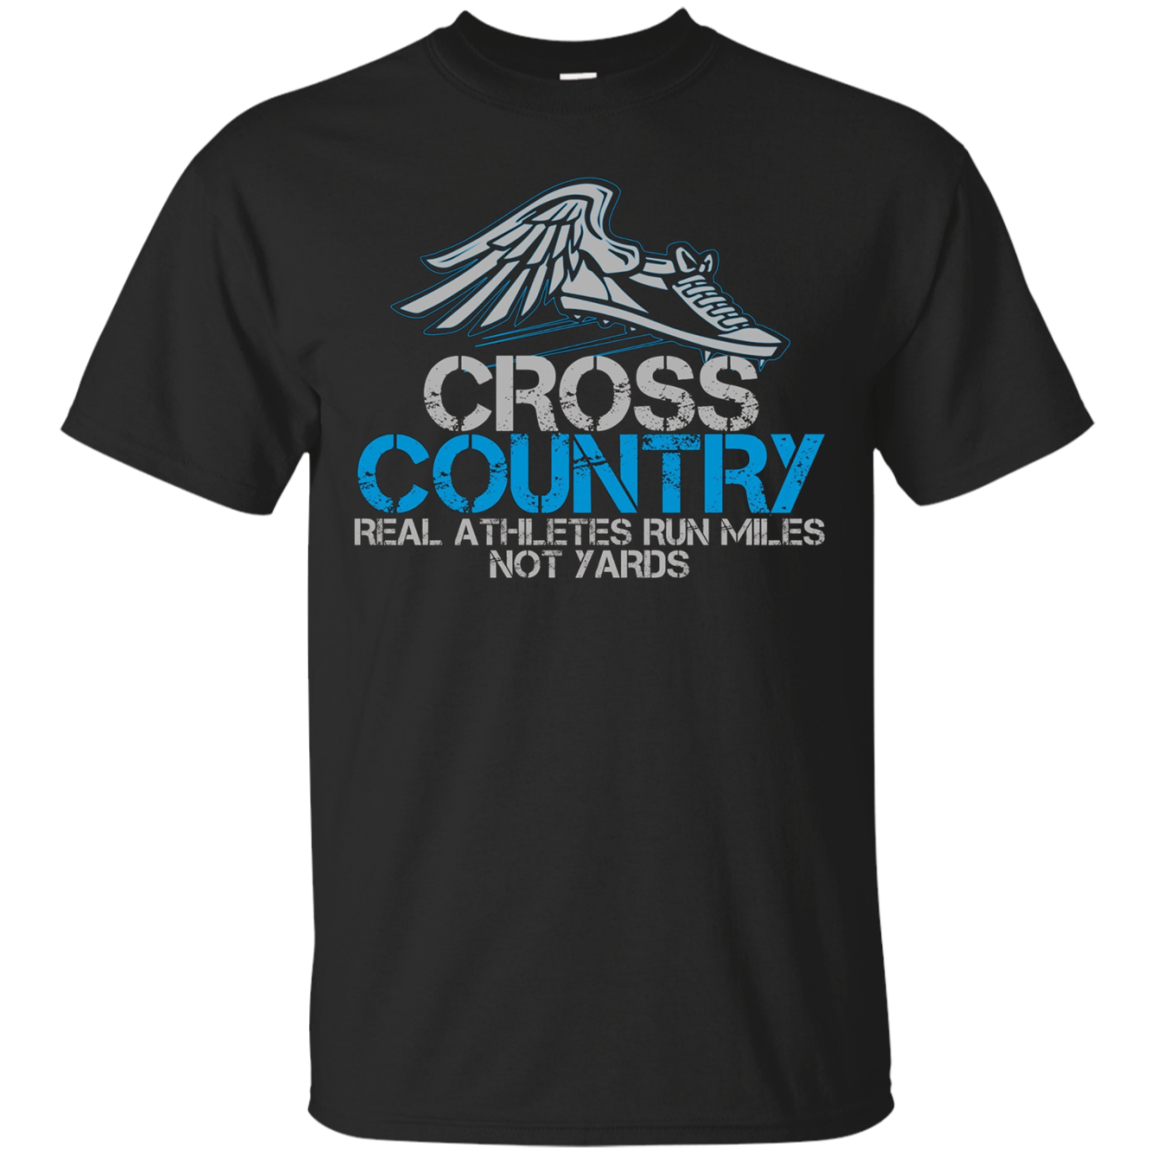 Cross Country: Real Athletes Run Miles Not Yards T-Shirt. CC